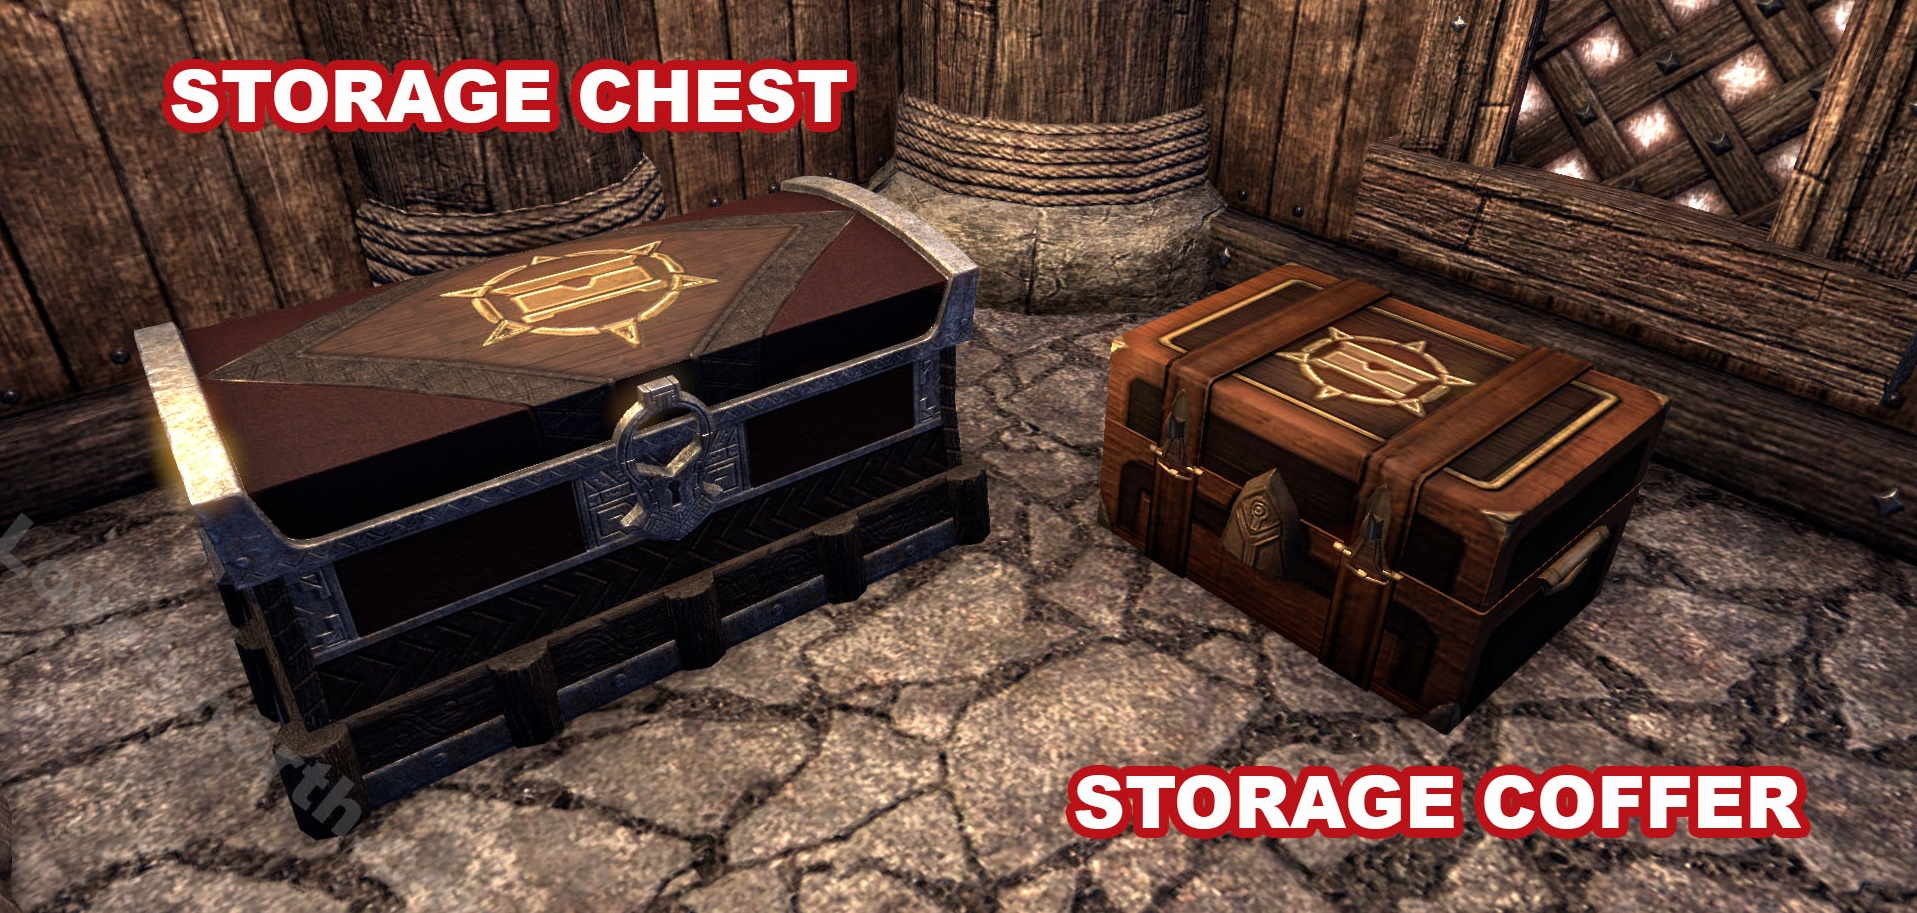 ESO Storage Container Appearance & Home Storage for Elder Scrolls Online (ESO) Housing